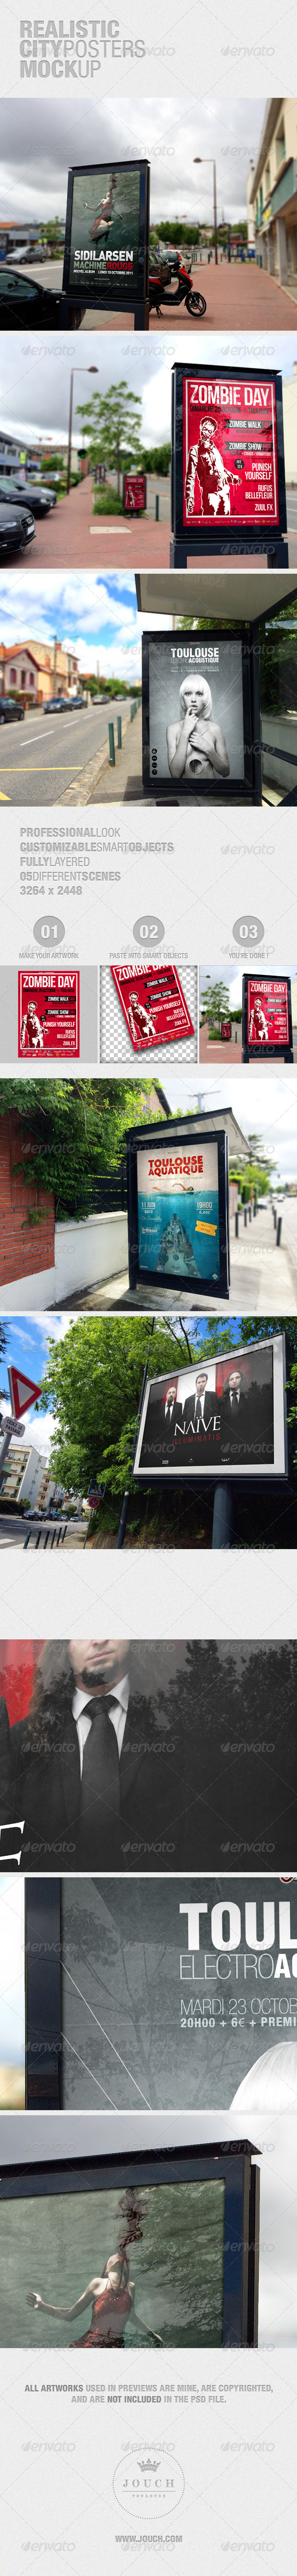 GraphicRiver Realistic City Posters Mockup 7646818